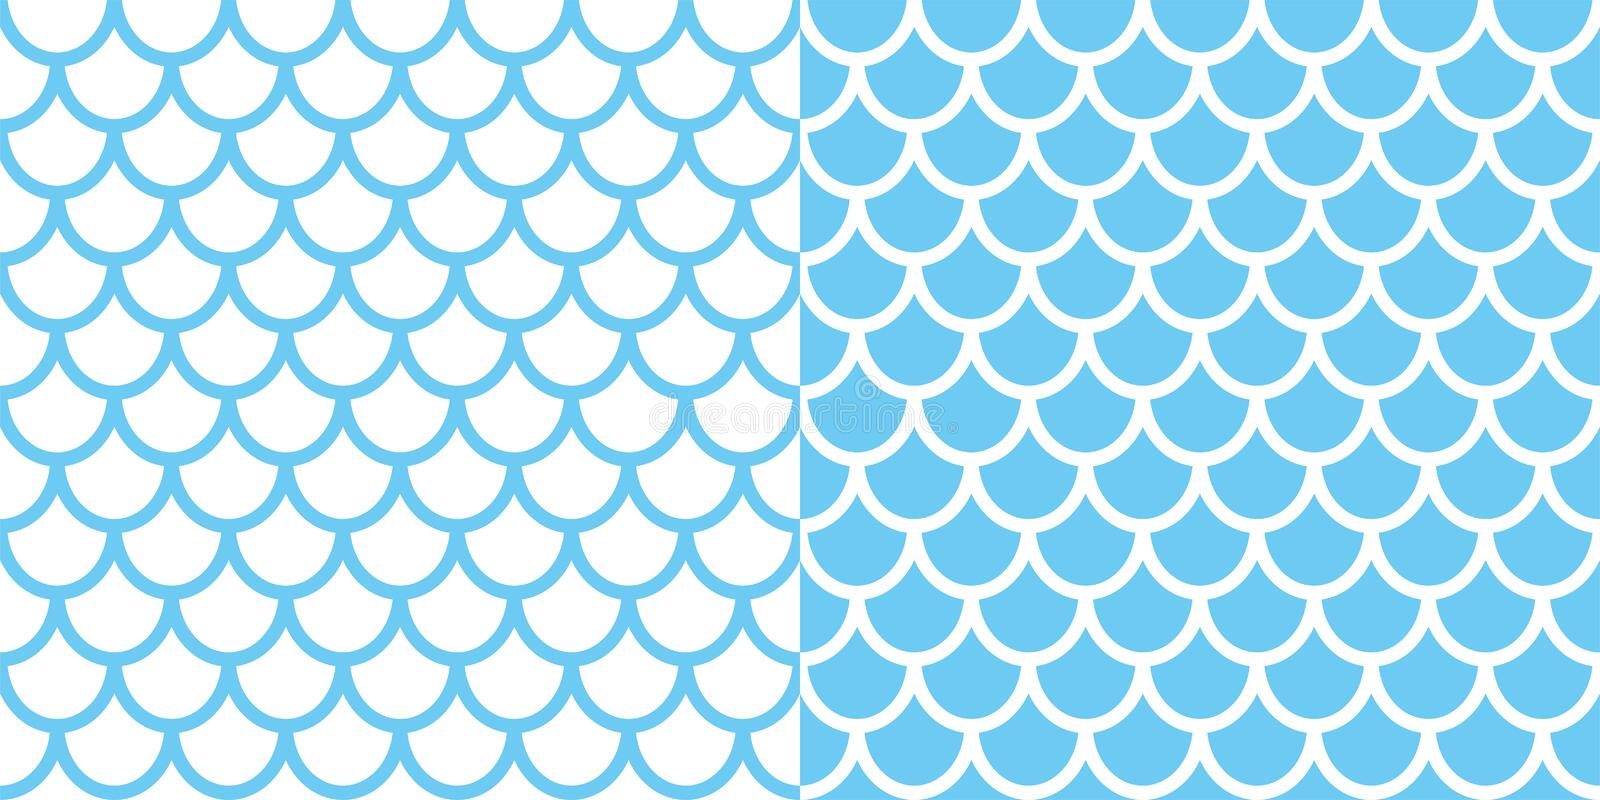 Set of the two mermaid patterns. Fish scale background. Blue texture for your design stock illustration